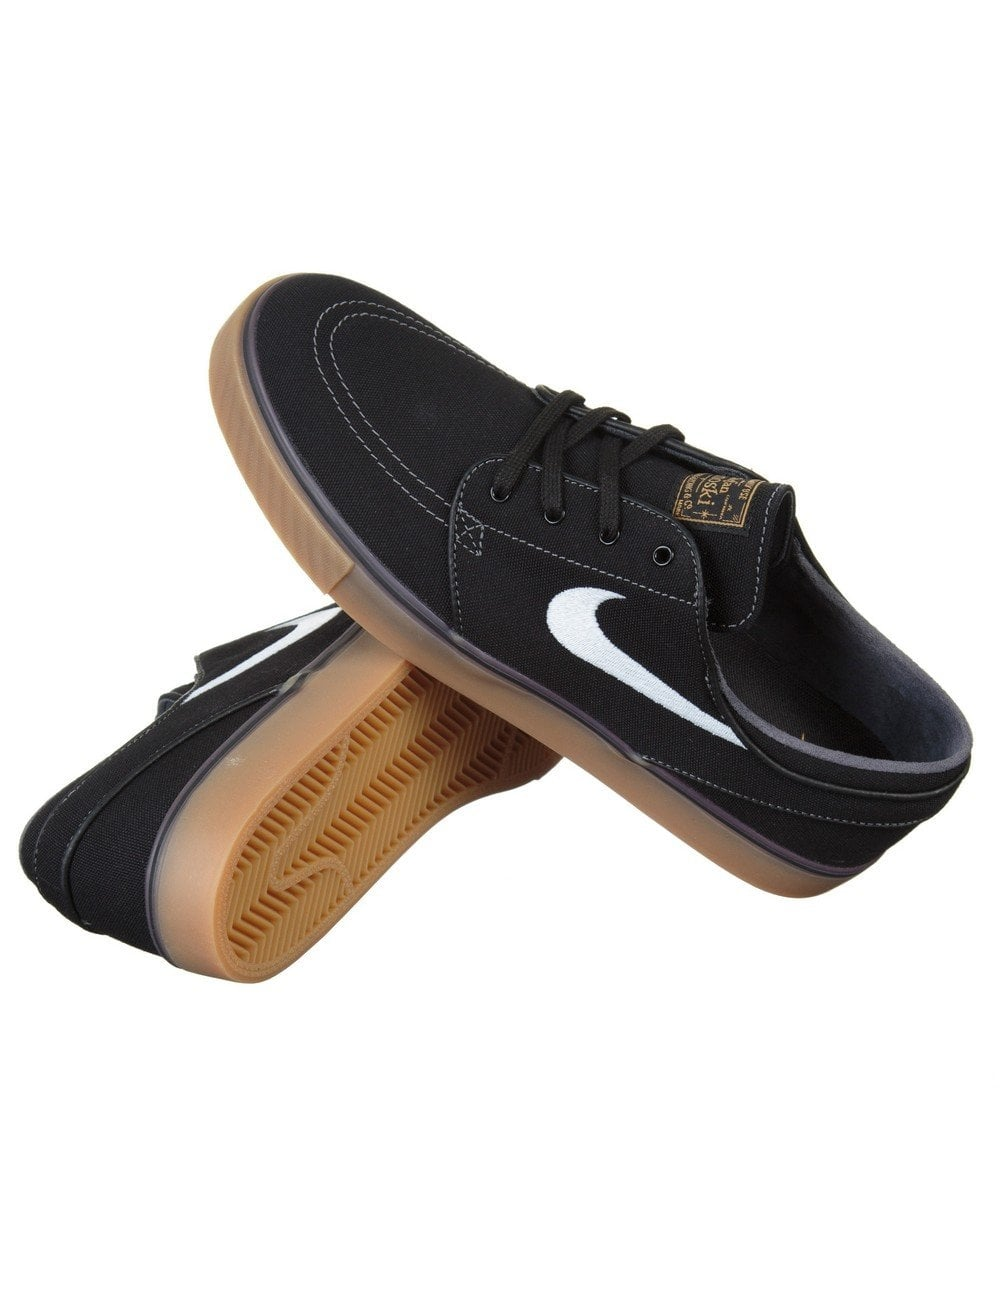 nike shoes black white sole style guru fashion glitz